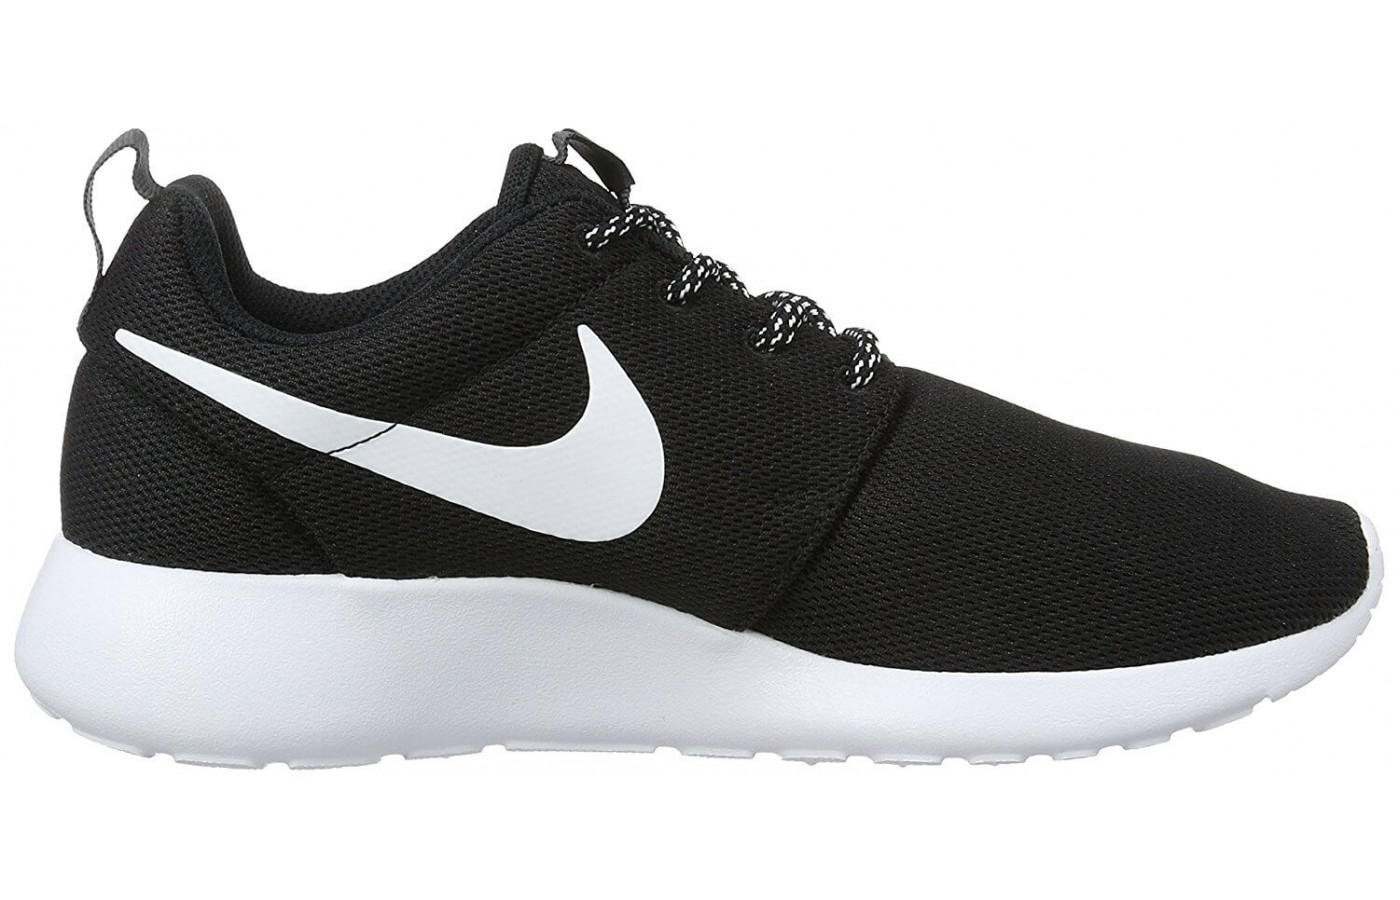 buy popular d8083 7db91 Nike Roshe One Reviewed - To Buy or Not in May 2019